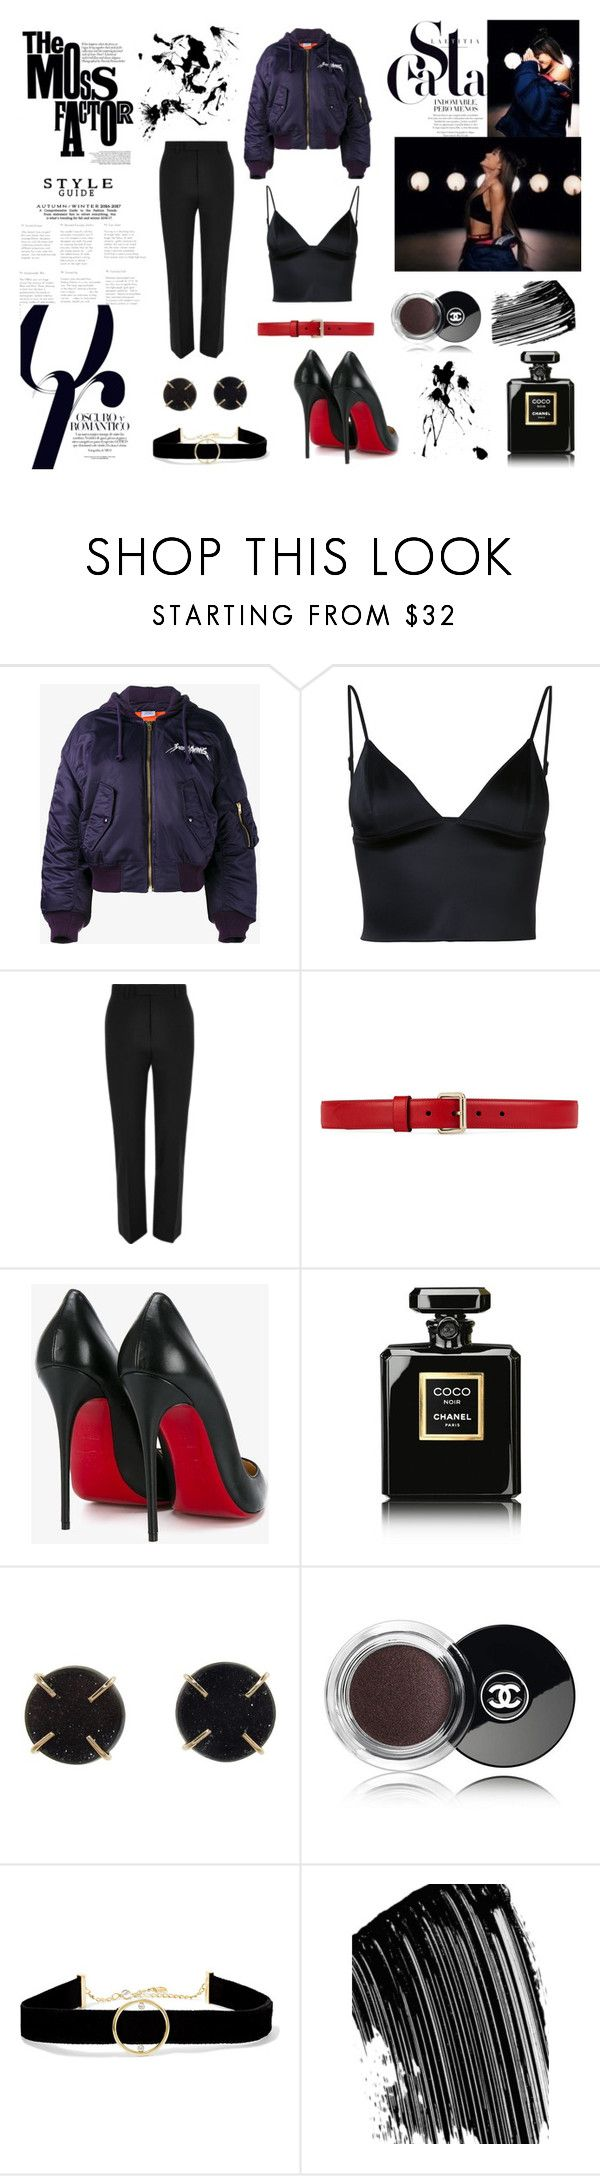 Ariana Grande - EVERYDAY by alina-zaynullina ❤ liked on Polyvore featuring T By Alexander Wang, River Island, Gucci, Christian Louboutin, Nico, Chanel, Melissa Joy Manning and Anissa Kermiche